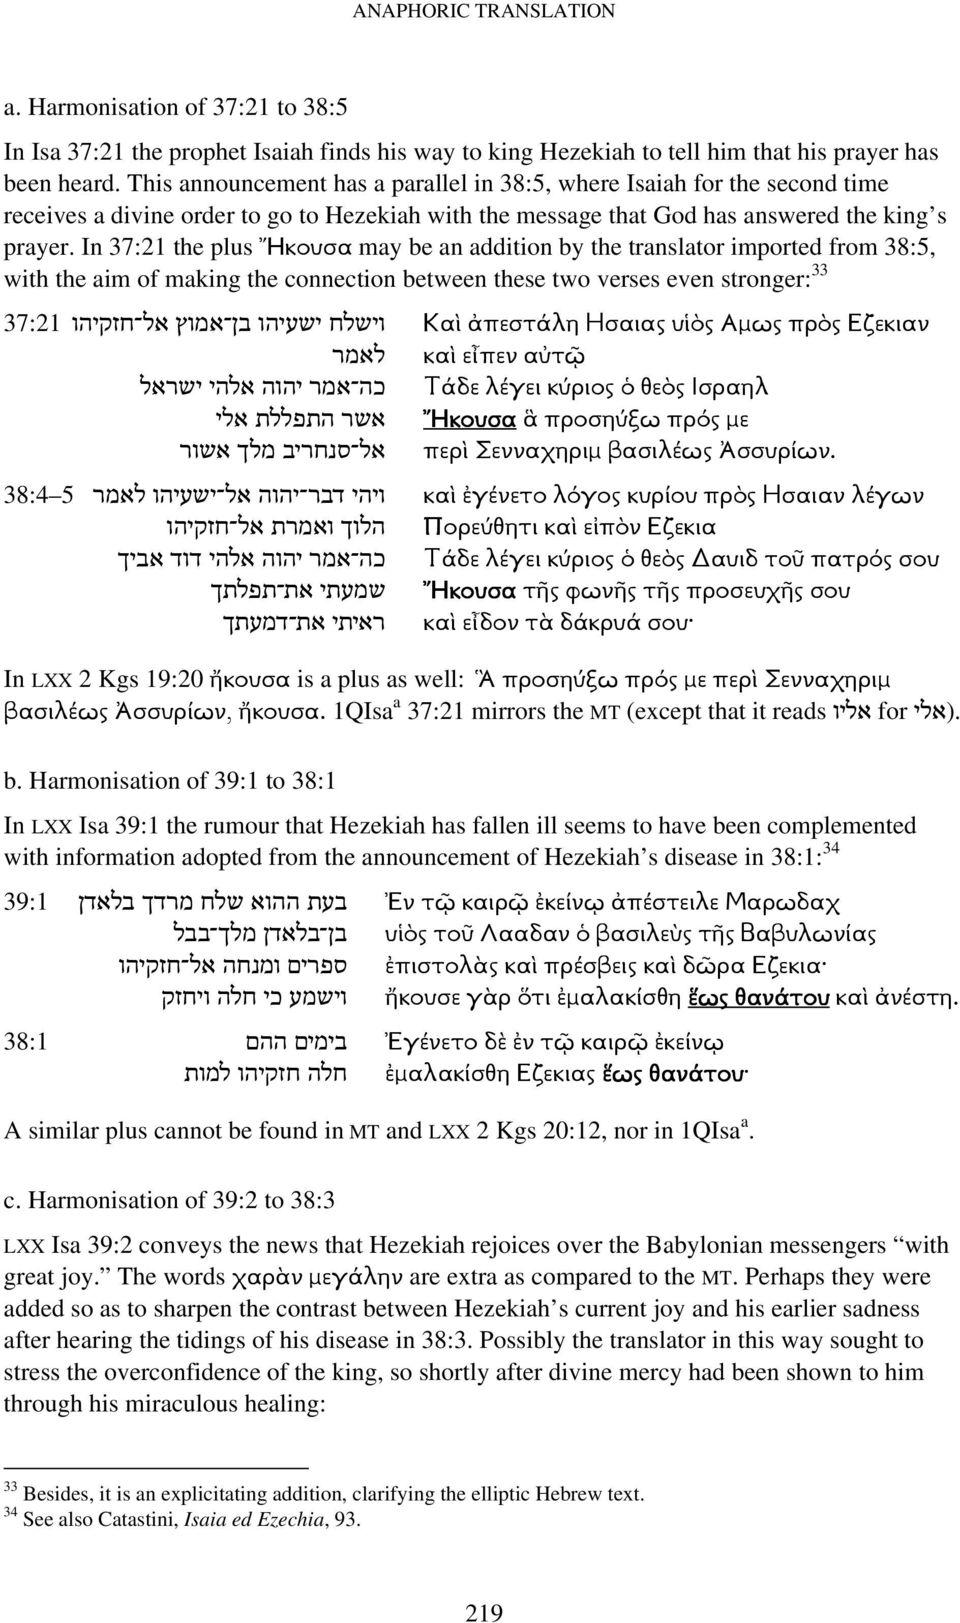 In 37:21 the plus Ἤκουσα may be an addition by the translator imported from 38:5, with the aim of making the connection between these two verses even stronger: 33 וישלח ישעיהו בן אמוץ אל חזקיהו 37:21